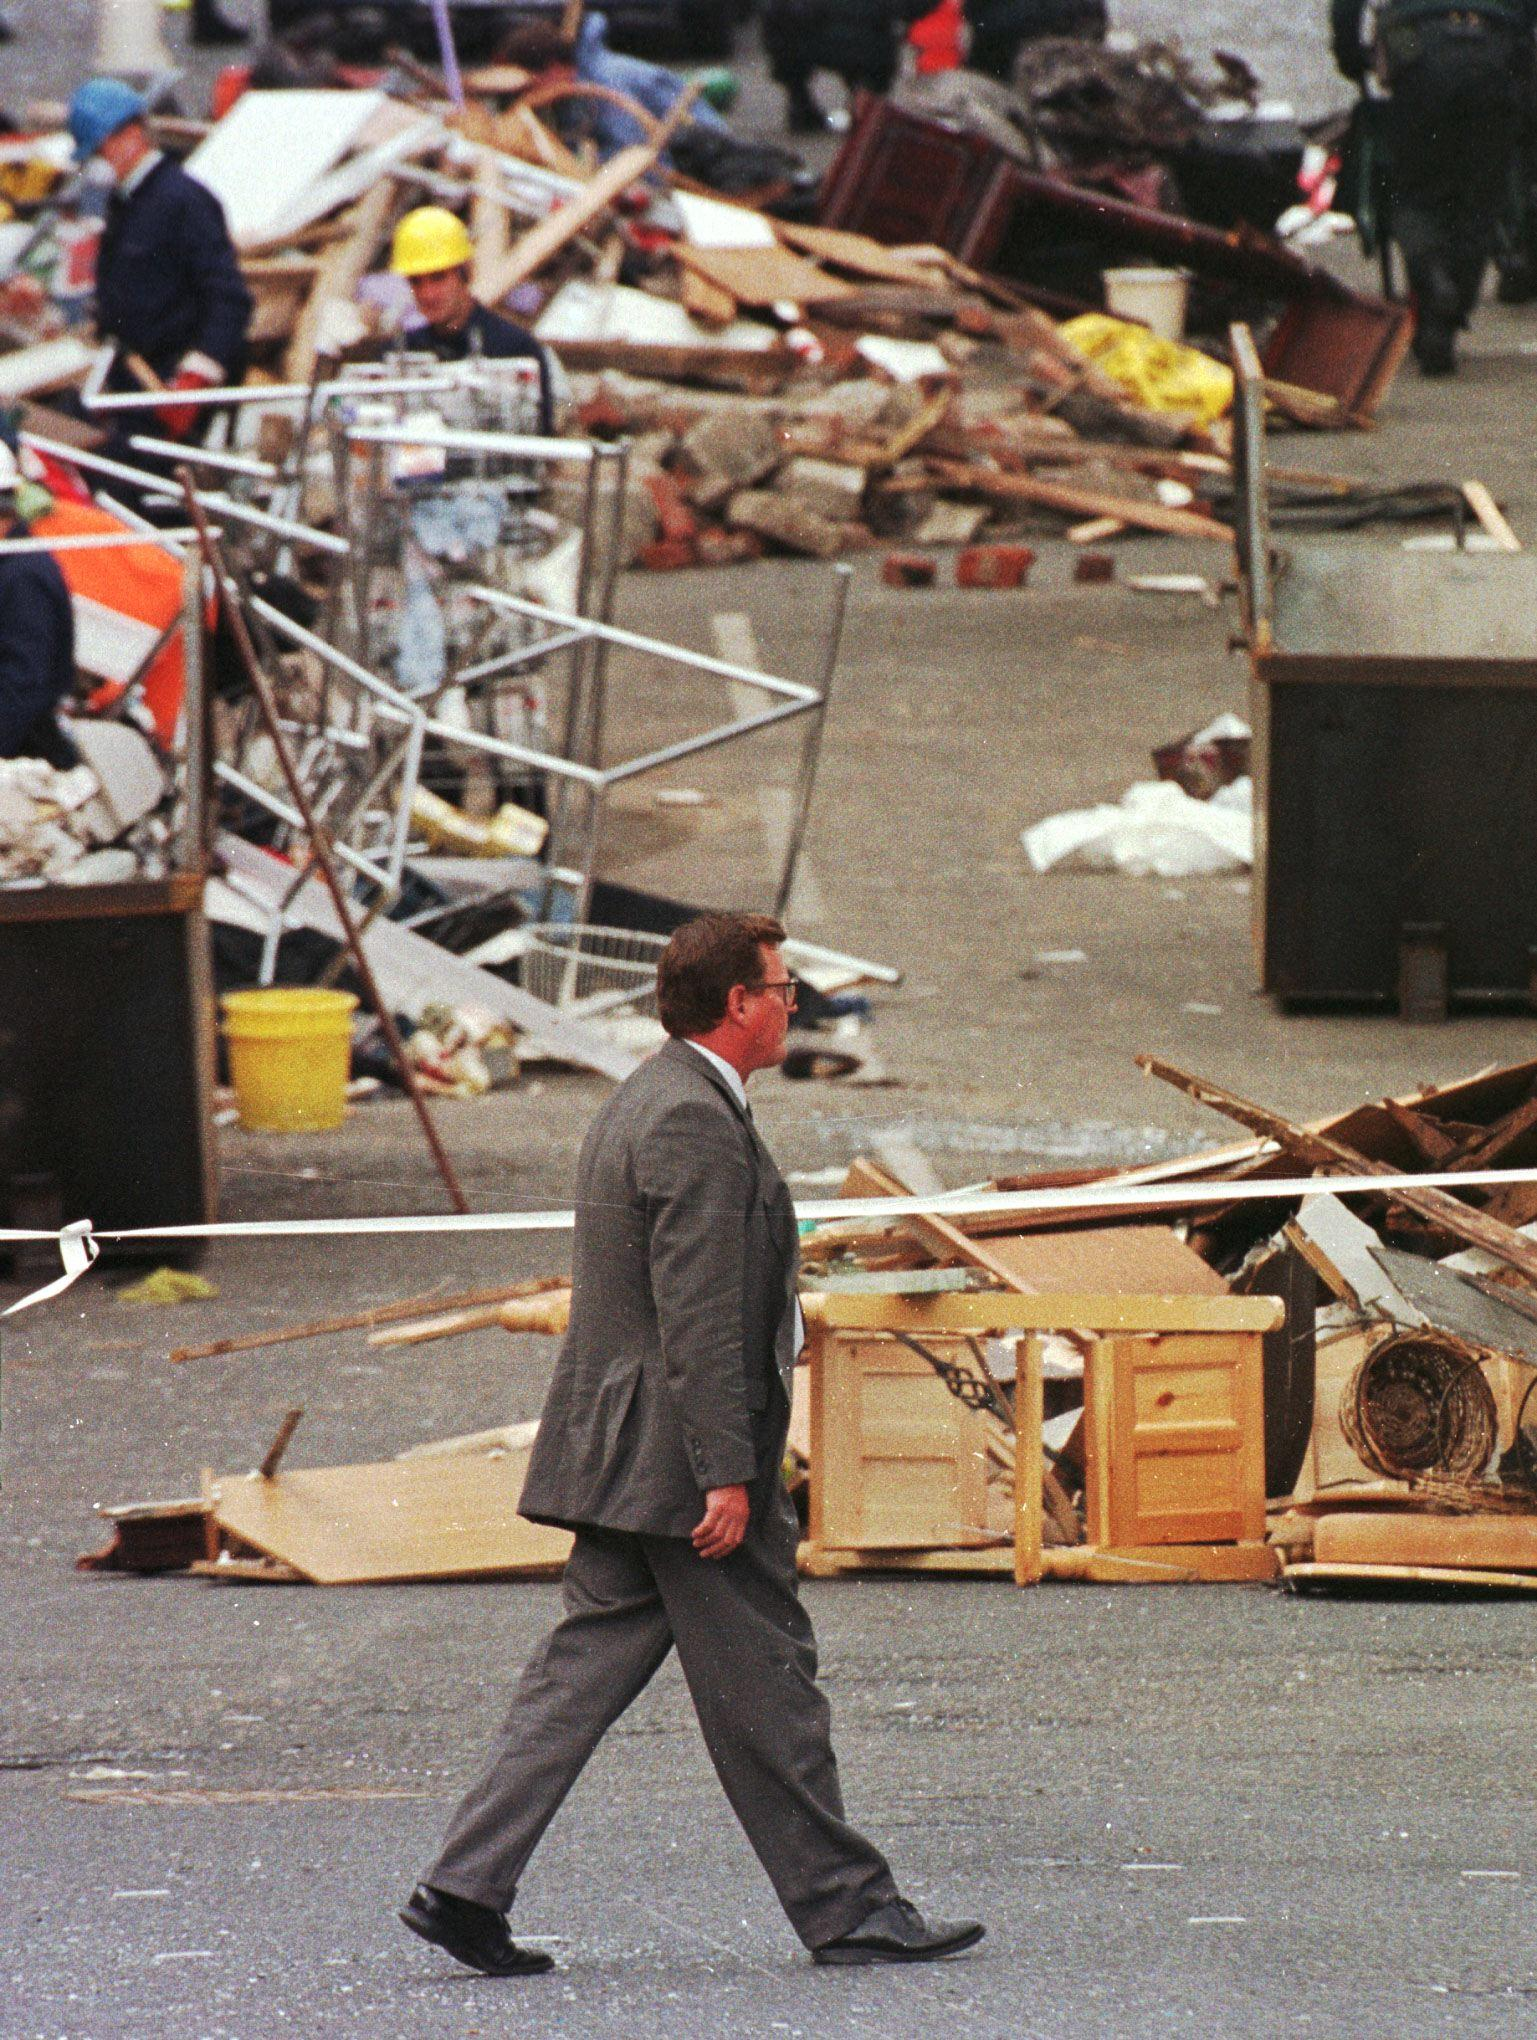 David Trimble, Chief Minister for the Northern Ireland Assembly, surveys the damage at the bomb site, 17 August in the northern Irish town of Omagh after a car bomb explosion killed 28 and injured hundreds 15 August. / AFP PHOTO / PAUL VICENTE (Photo credit should read PAUL VICENTE/AFP/Getty Images)